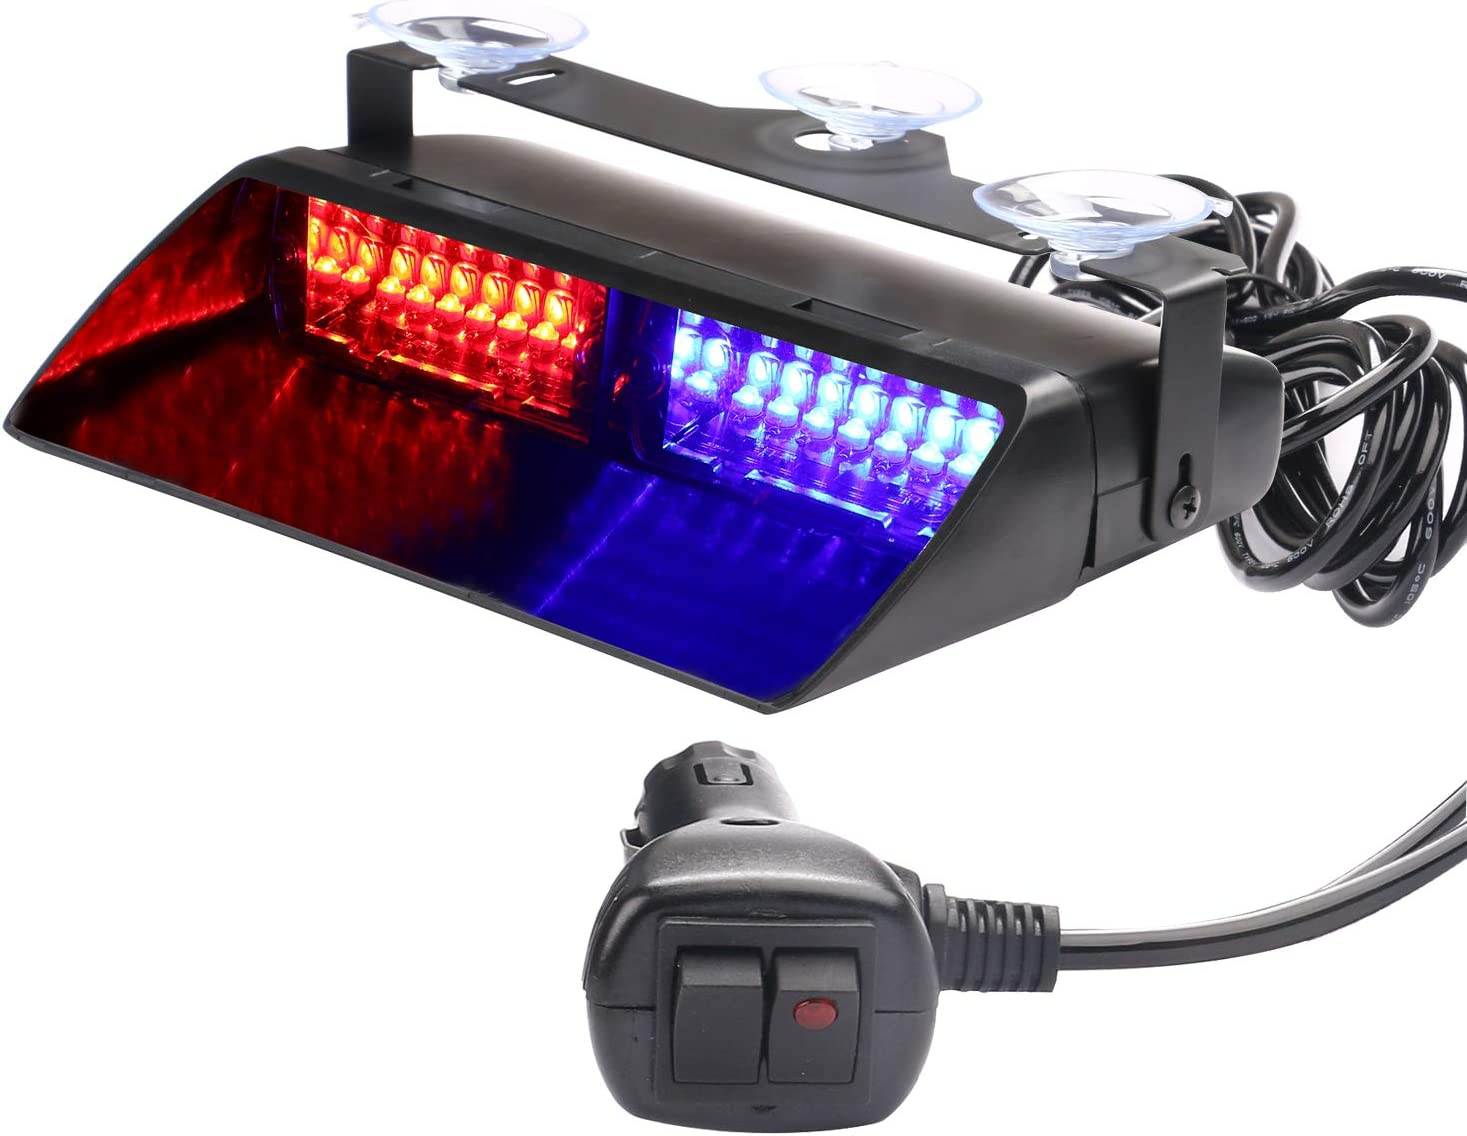 ASPL 12V 16 LED High Intensity LED Law Enforcement Emergency Hazard Warning Strobe Lights for Interior Roof/Dash/Windshield with Suction Cups (Red/Blue)